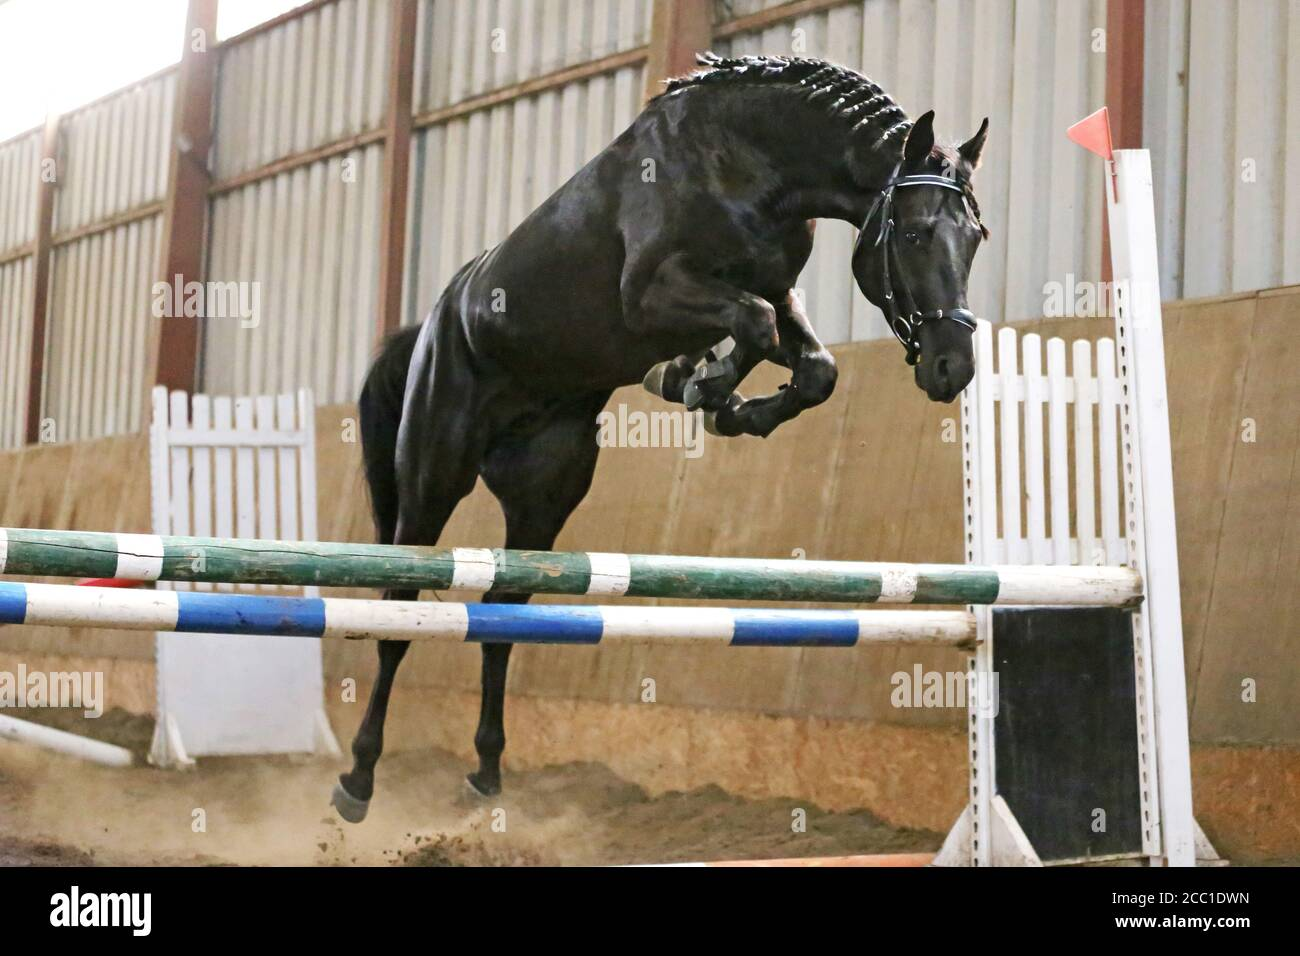 Beautiful Young Purebred Horse Jump Over Barrier Free Jumping In The Riding Hall Young Beautiful Sport Horse Free Jumps Over A Hurdle Indoors Stock Photo Alamy